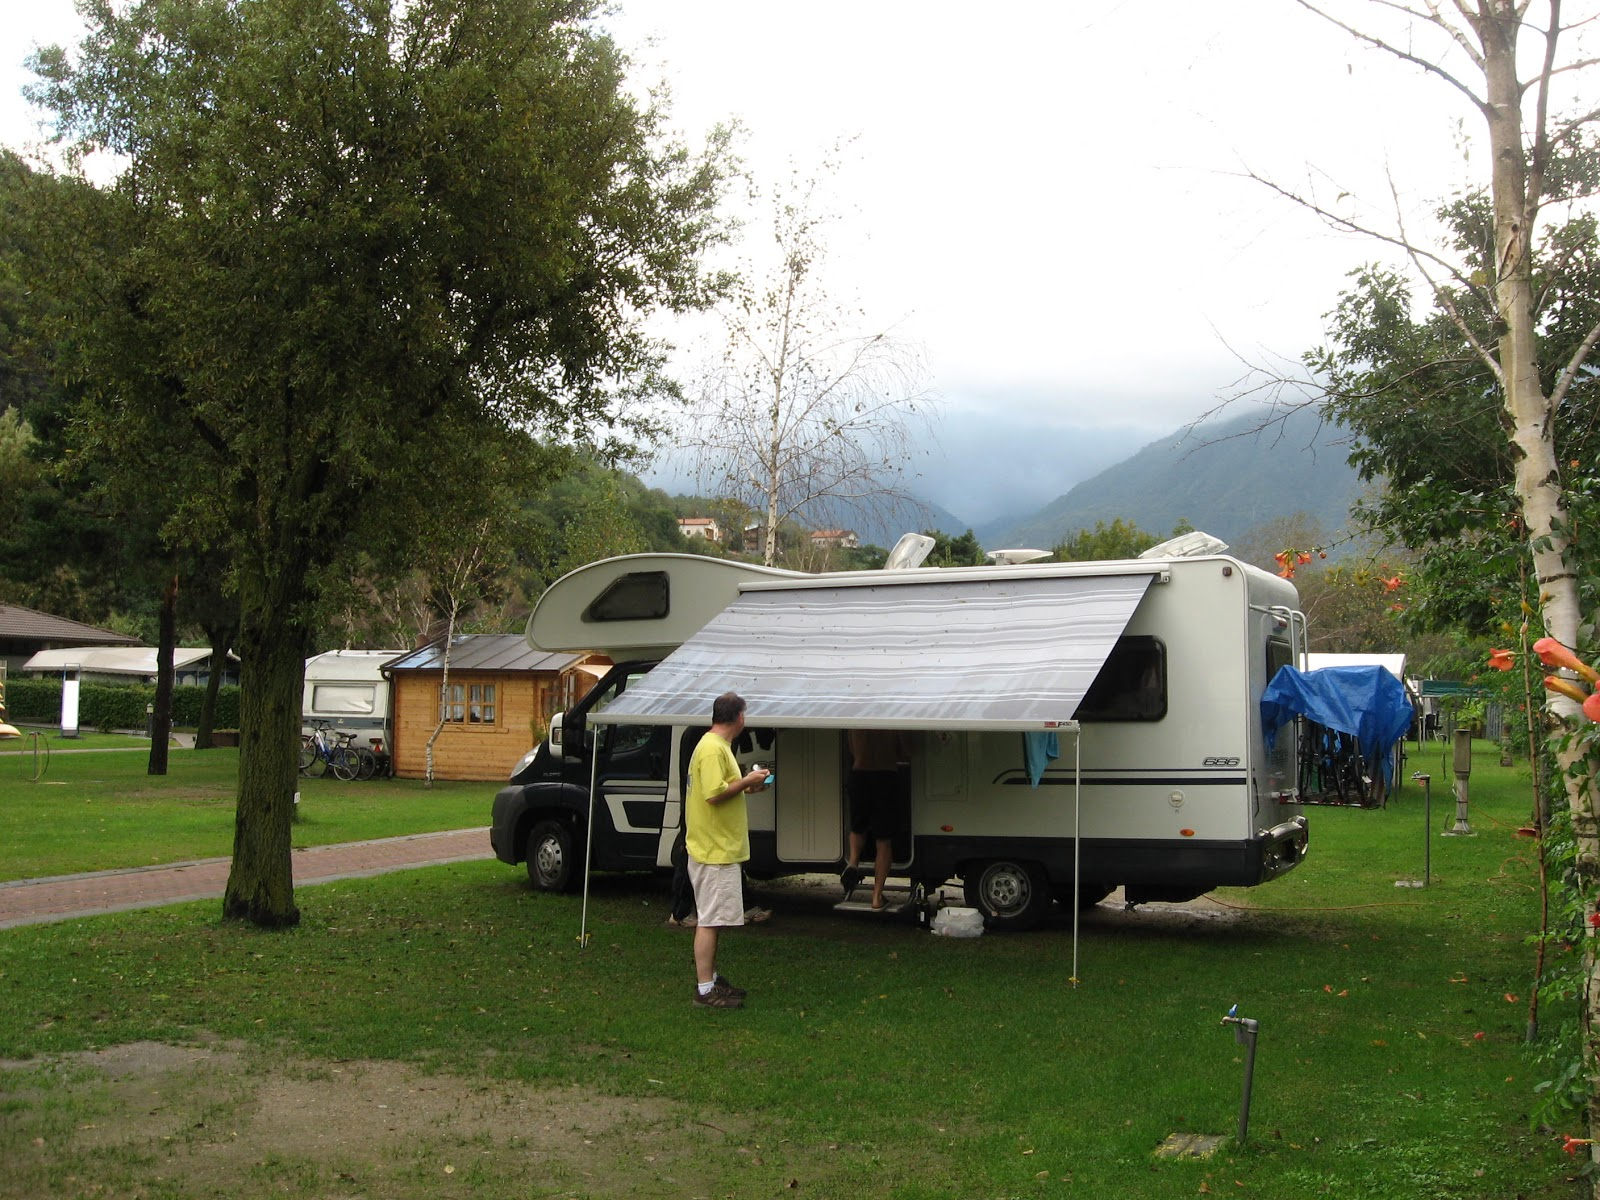 Camping Bellagio The Italian Job October 2012